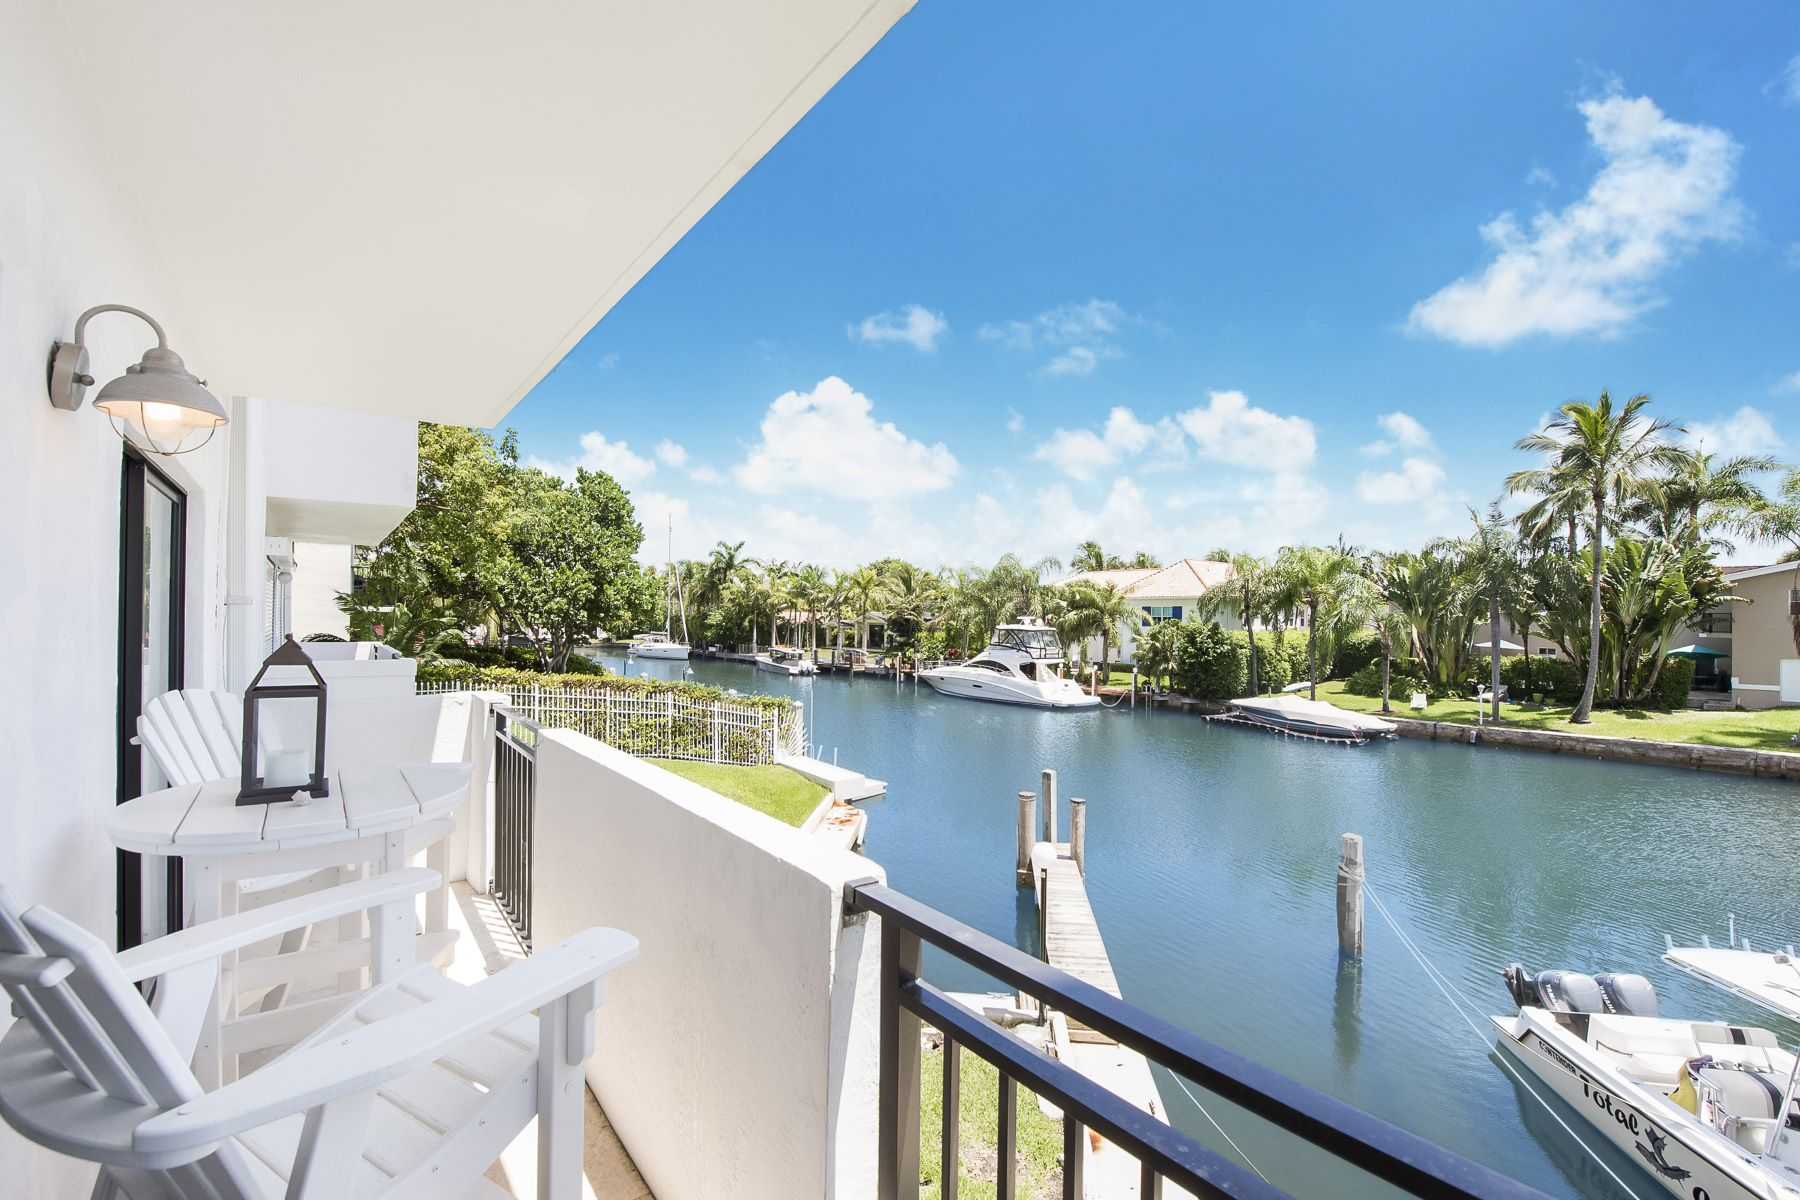 Condominium for Rent at 6901 Edgewater Dr 6901 Edgewater Dr 211 Coral Gables, Florida 33133 United States